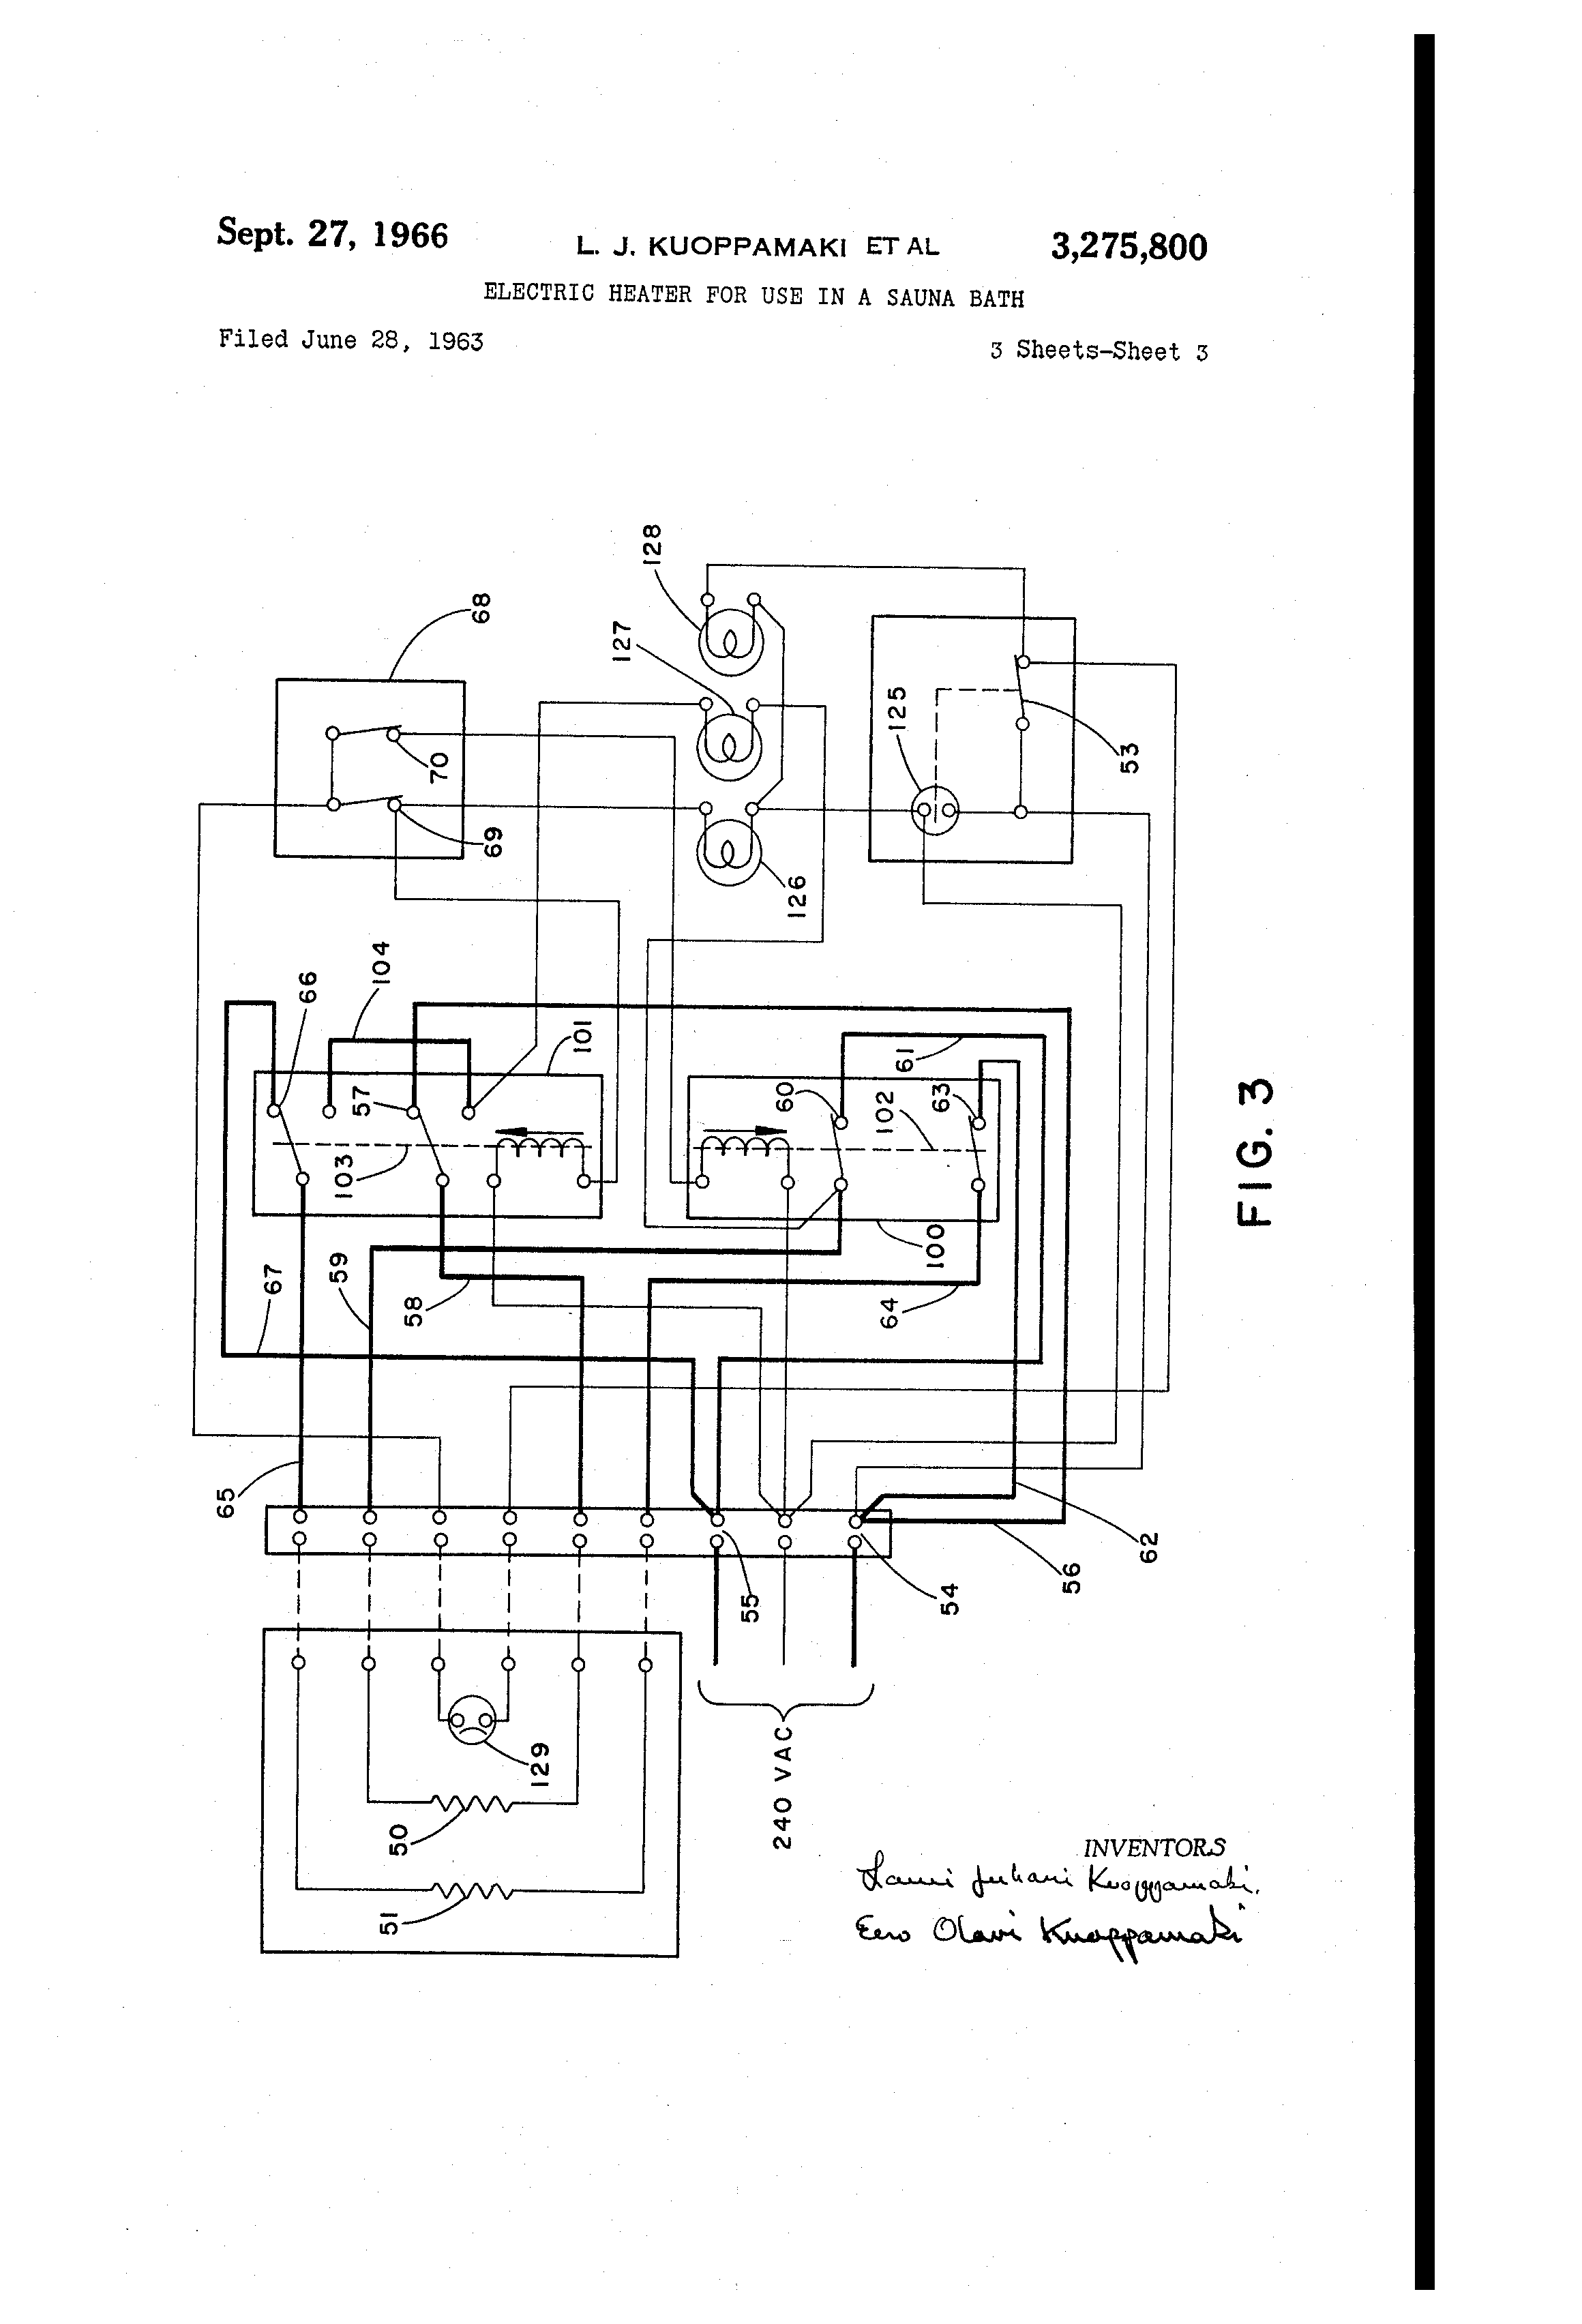 US3275800 2 patent us3275800 electric heater for use in a sauna bath sauna wiring diagram at mifinder.co